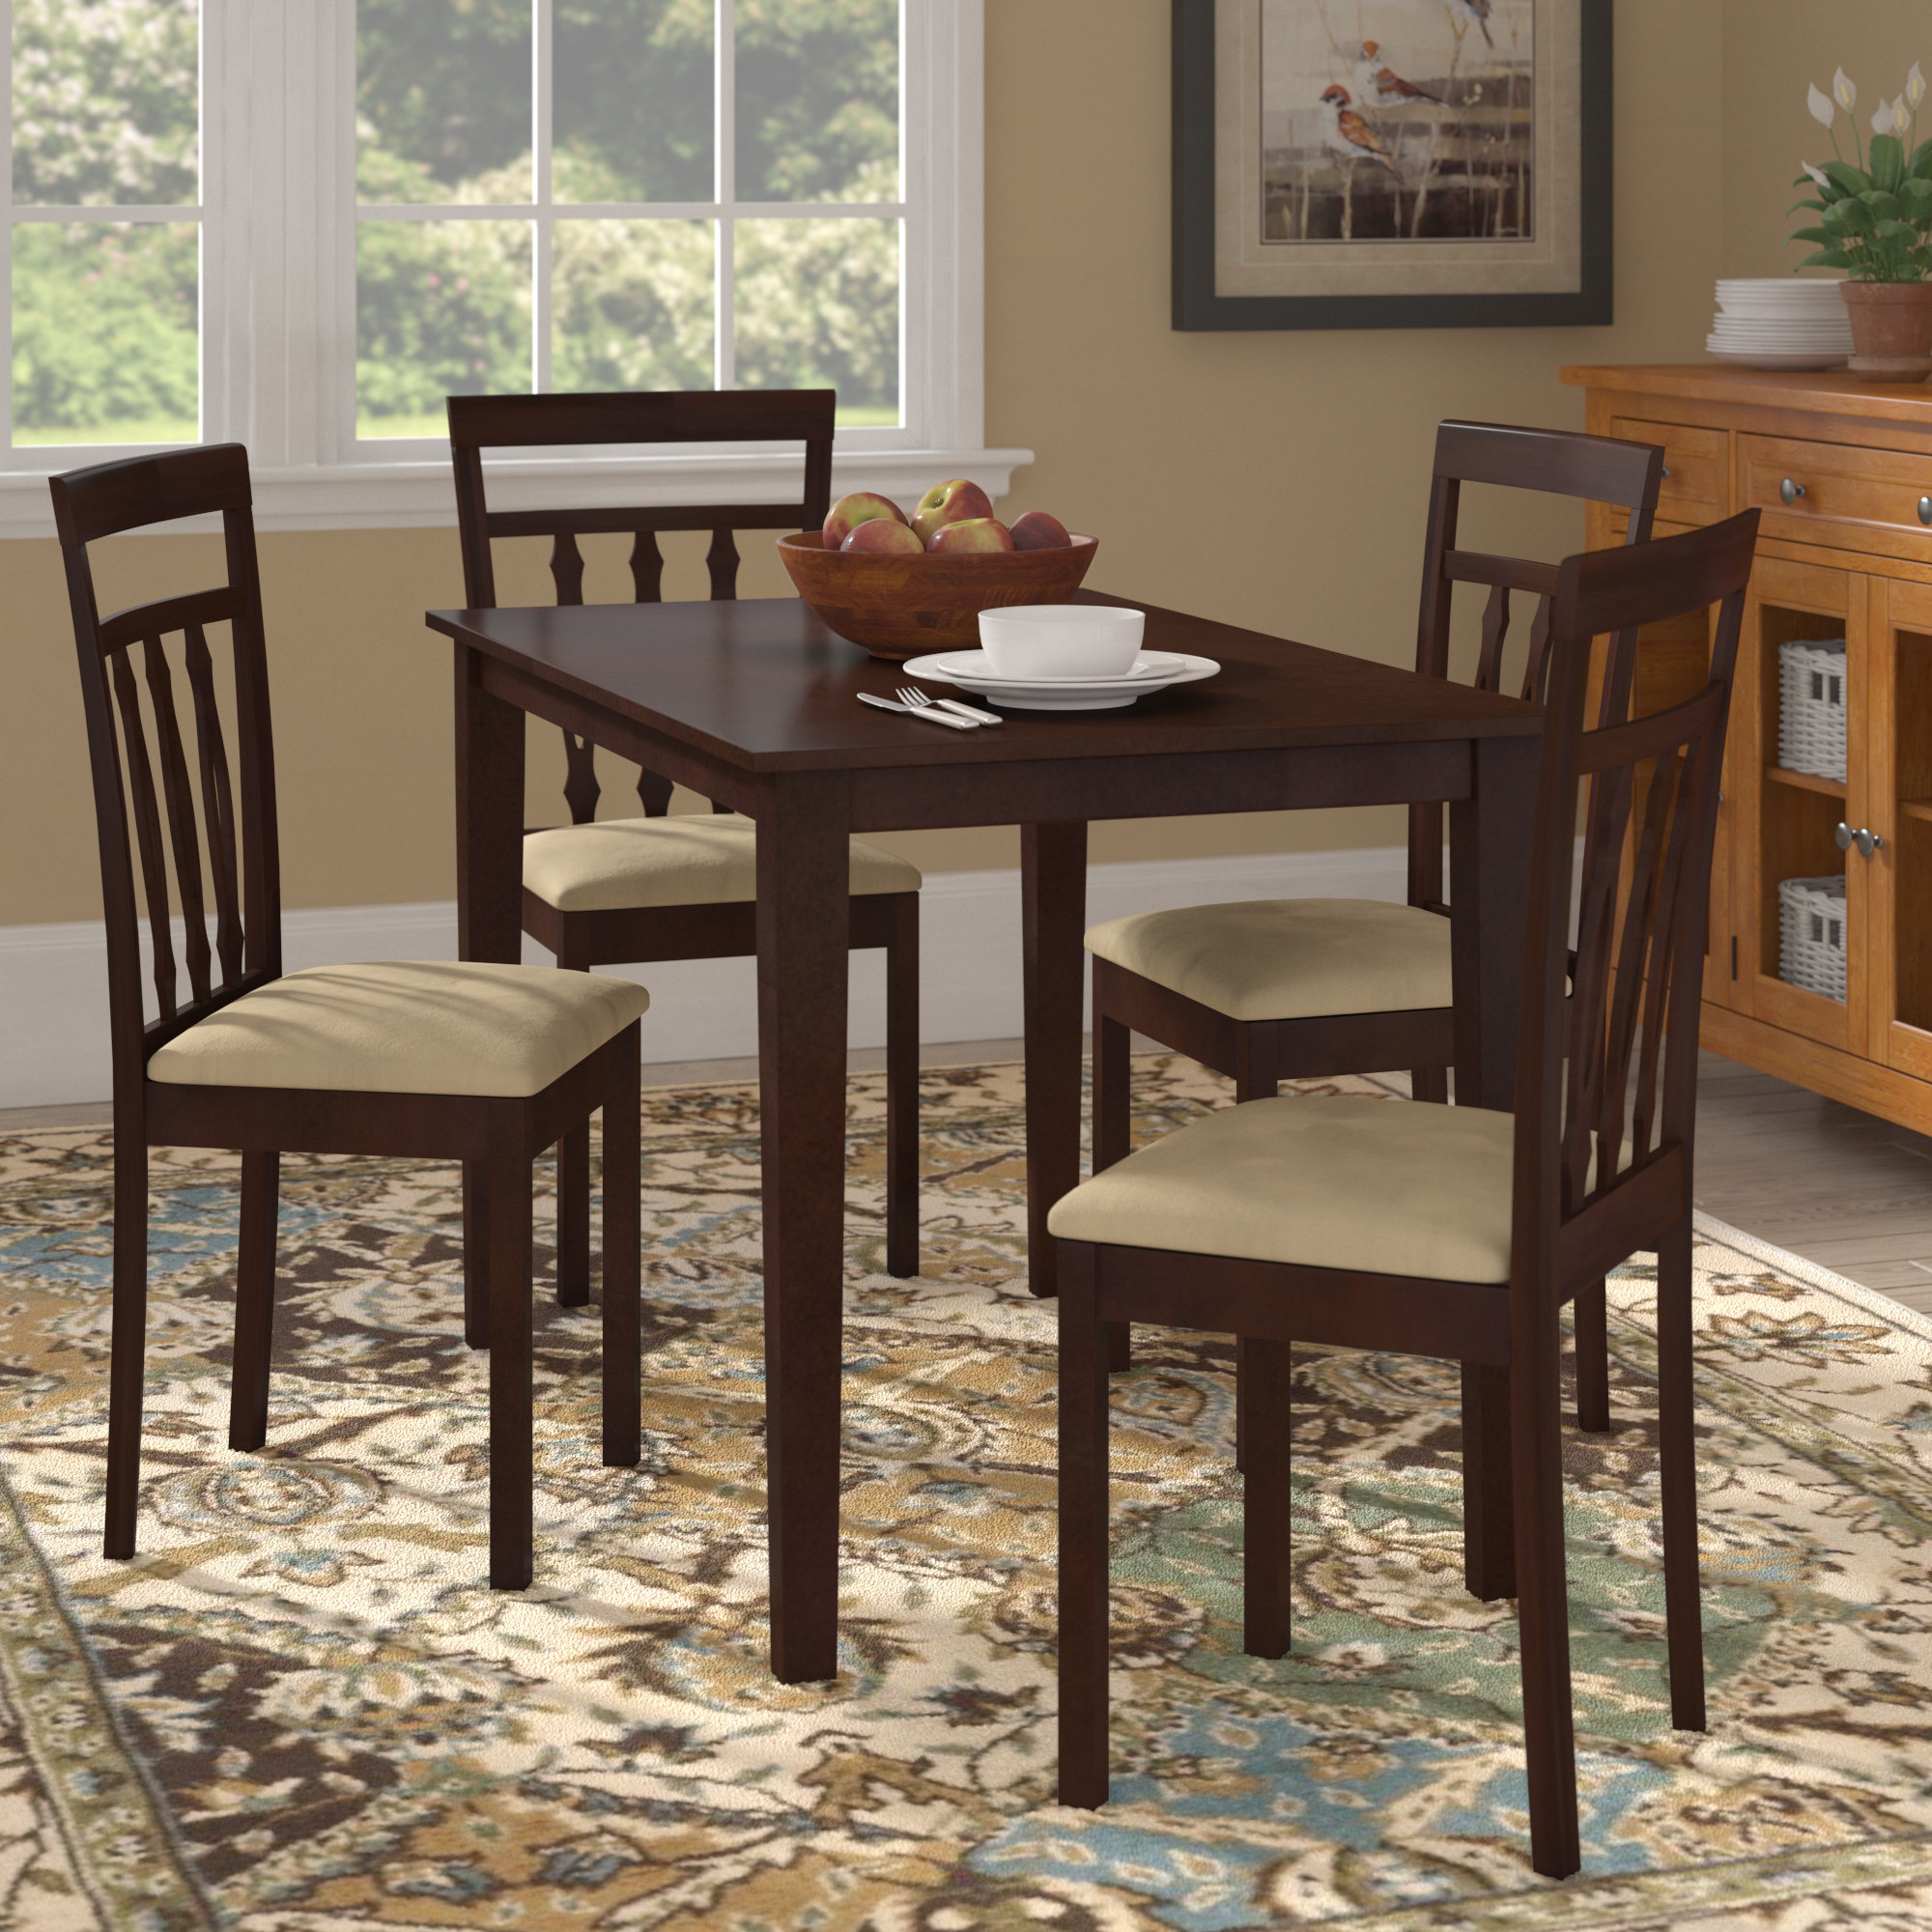 Well Liked Baillie 3 Piece Dining Sets Within Vivien 5 Piece Dining Set (View 20 of 20)